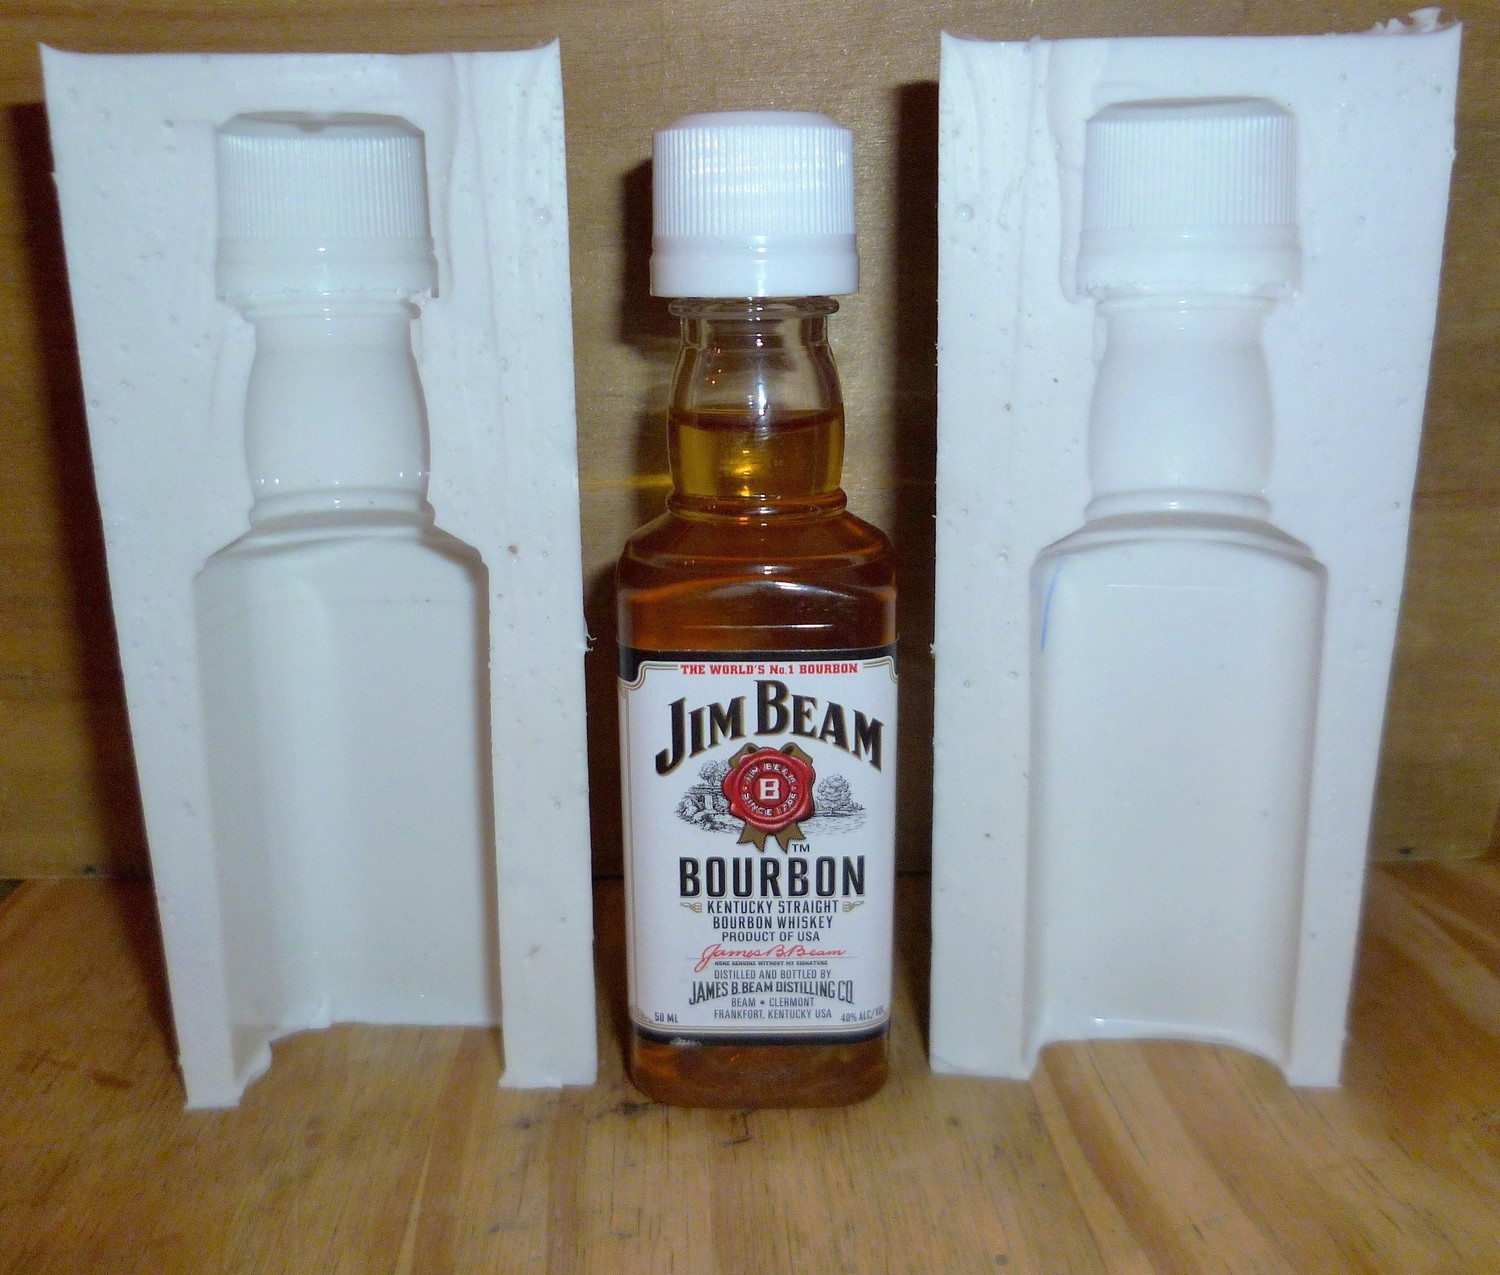 MINIATURE 3D JIM BEAM BOTTLE SILICONE MOULD